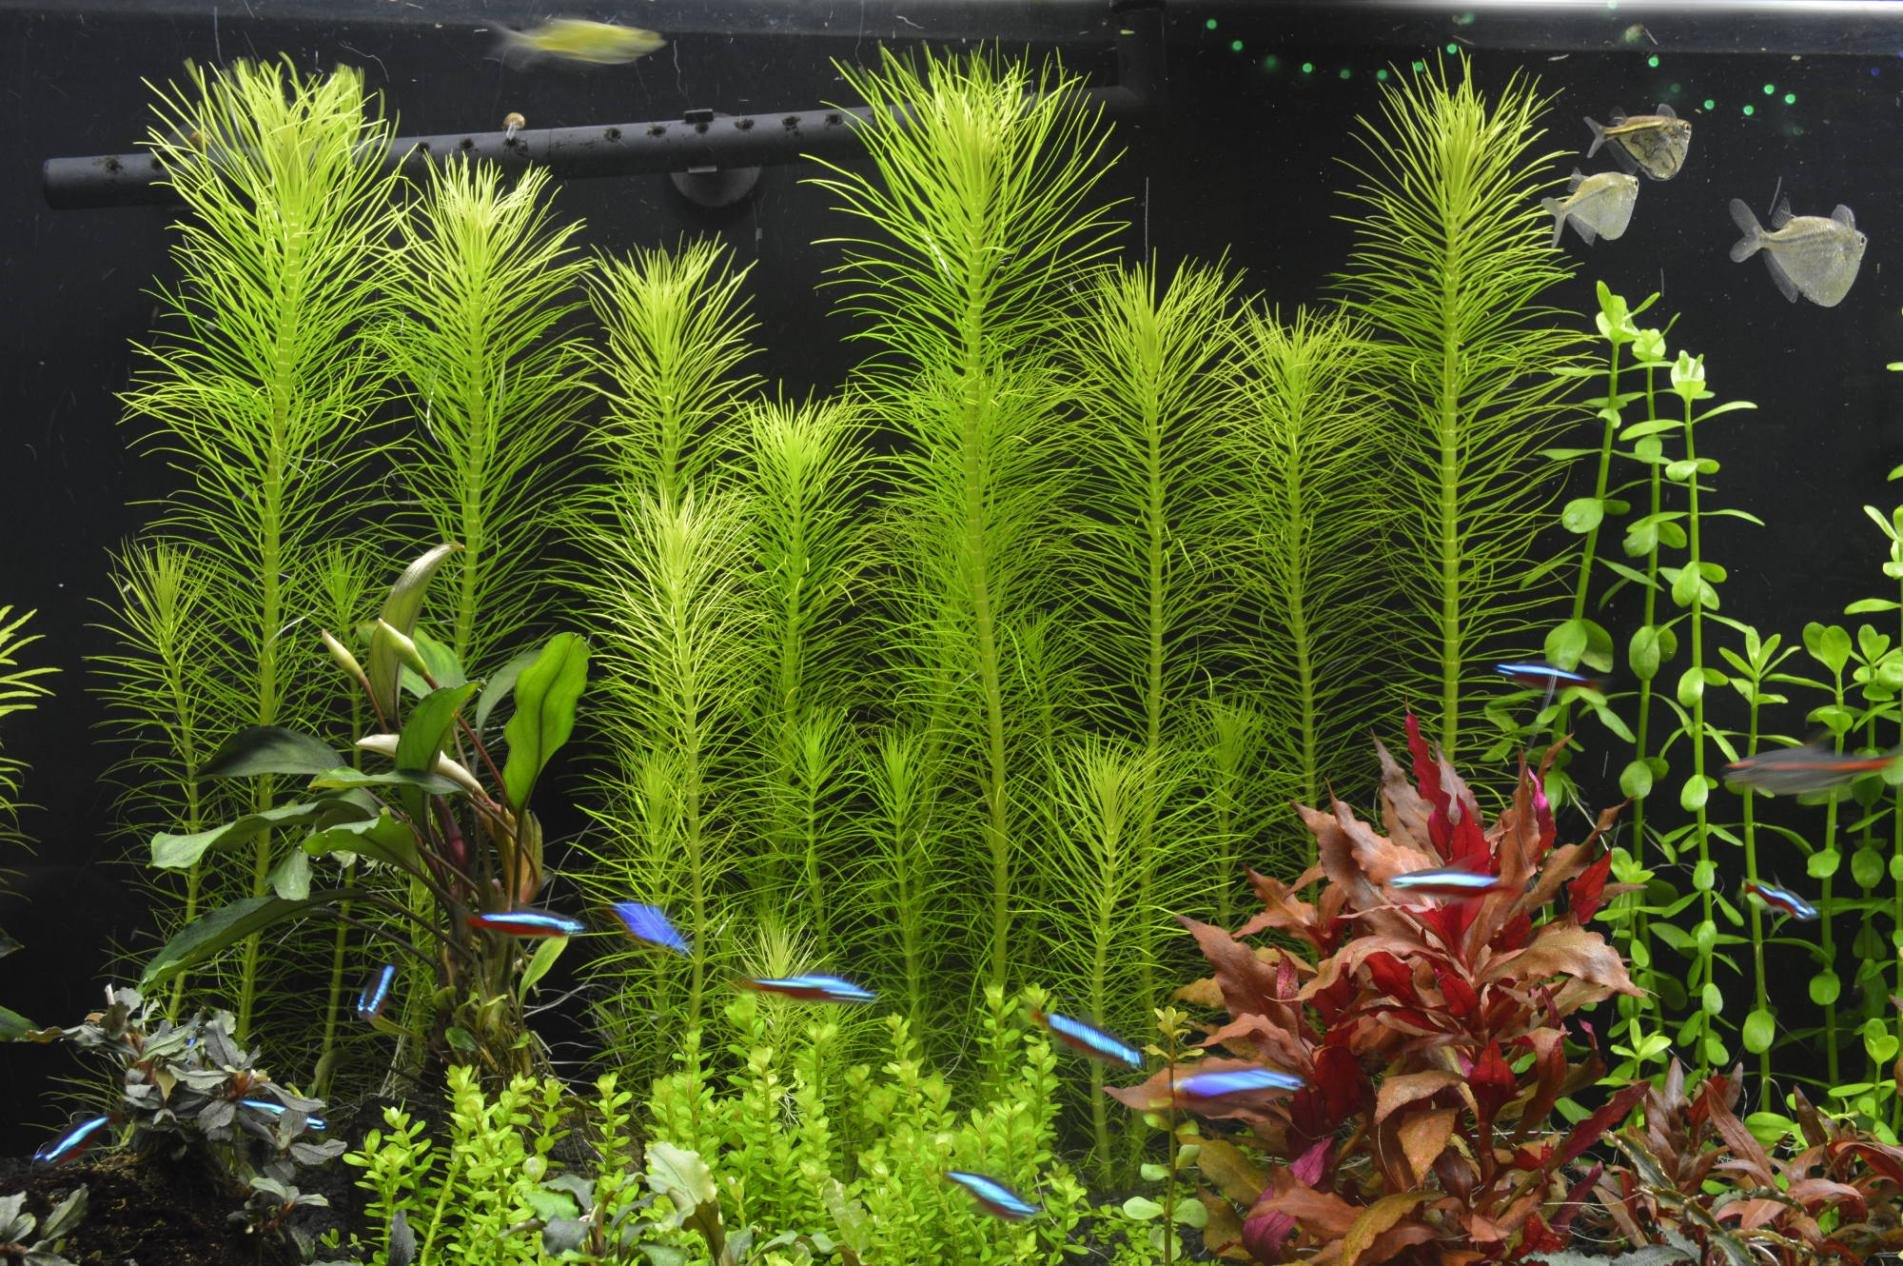 Click image for larger version  Name:BkgPlants.jpg Views:193 Size:502.1 KB ID:60129